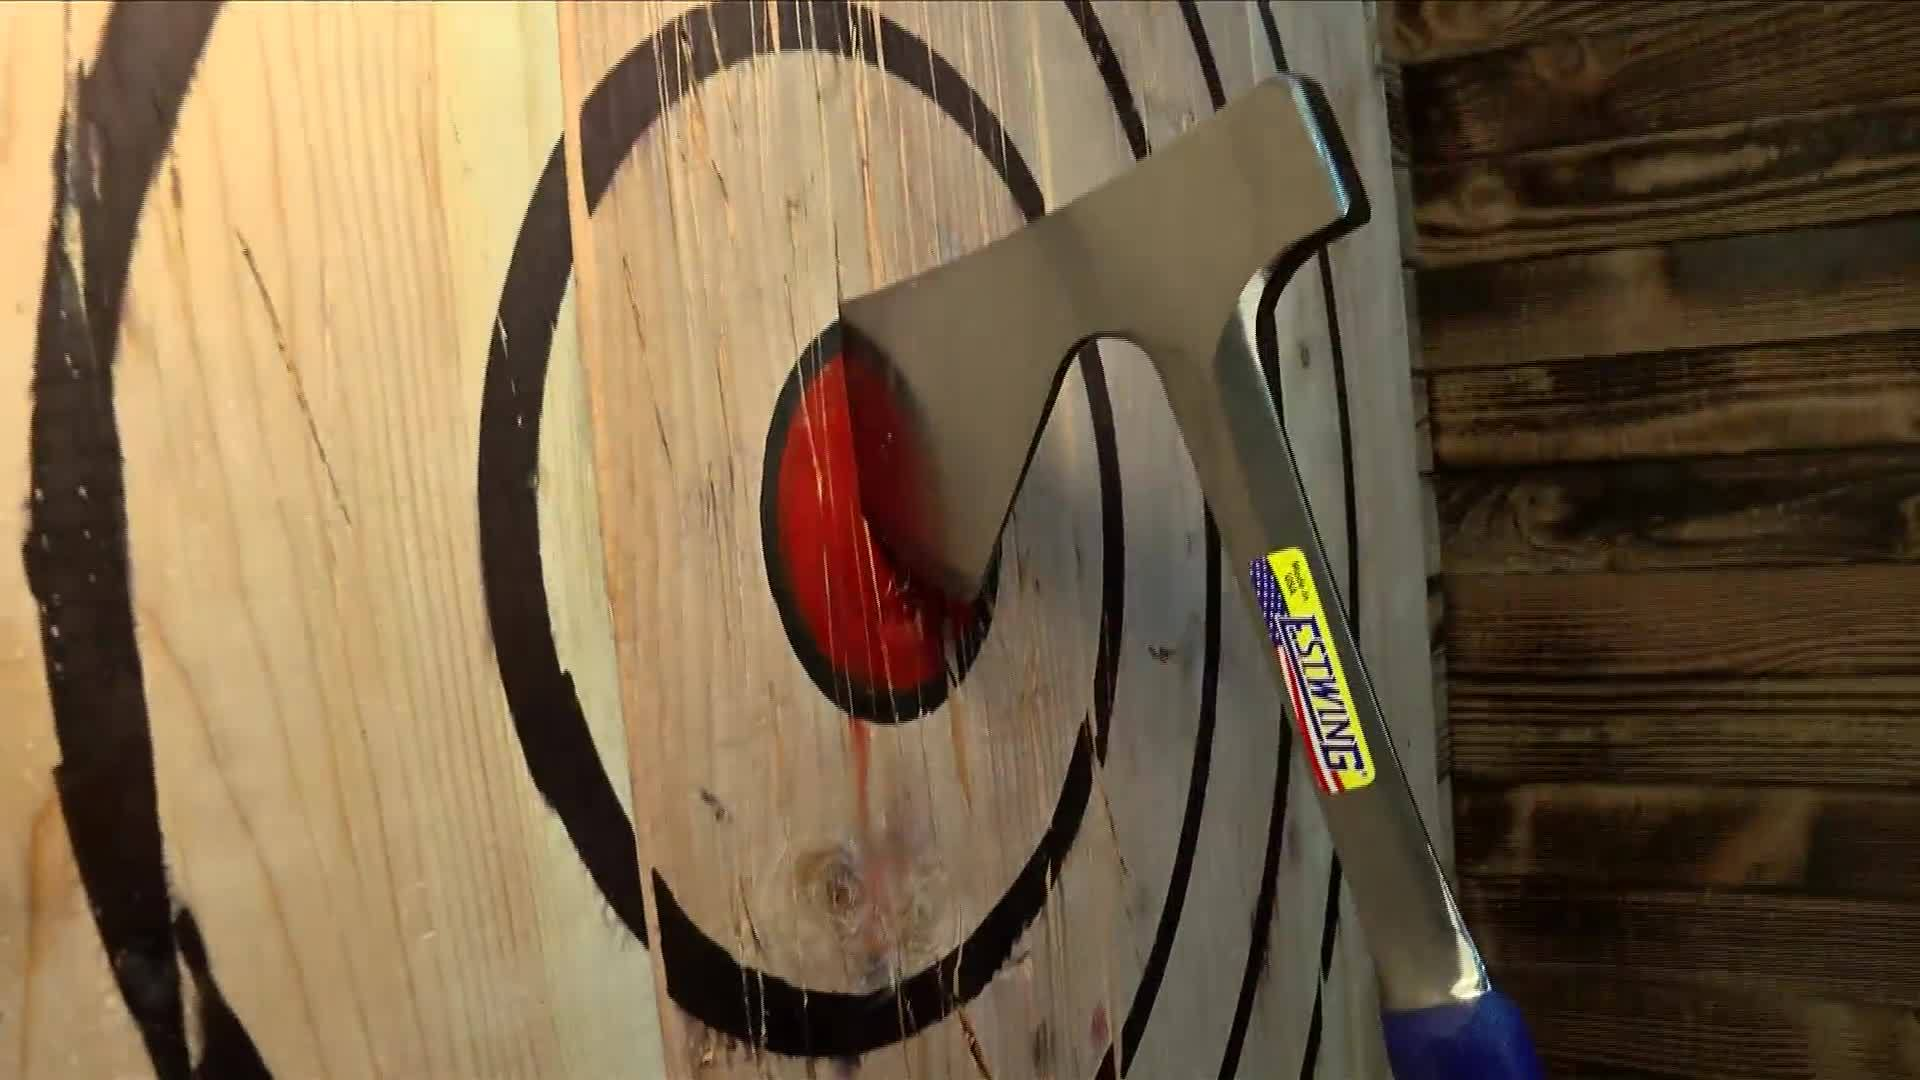 Bad_Axe_Throwing_now_in_Fresno_7_20190208030004